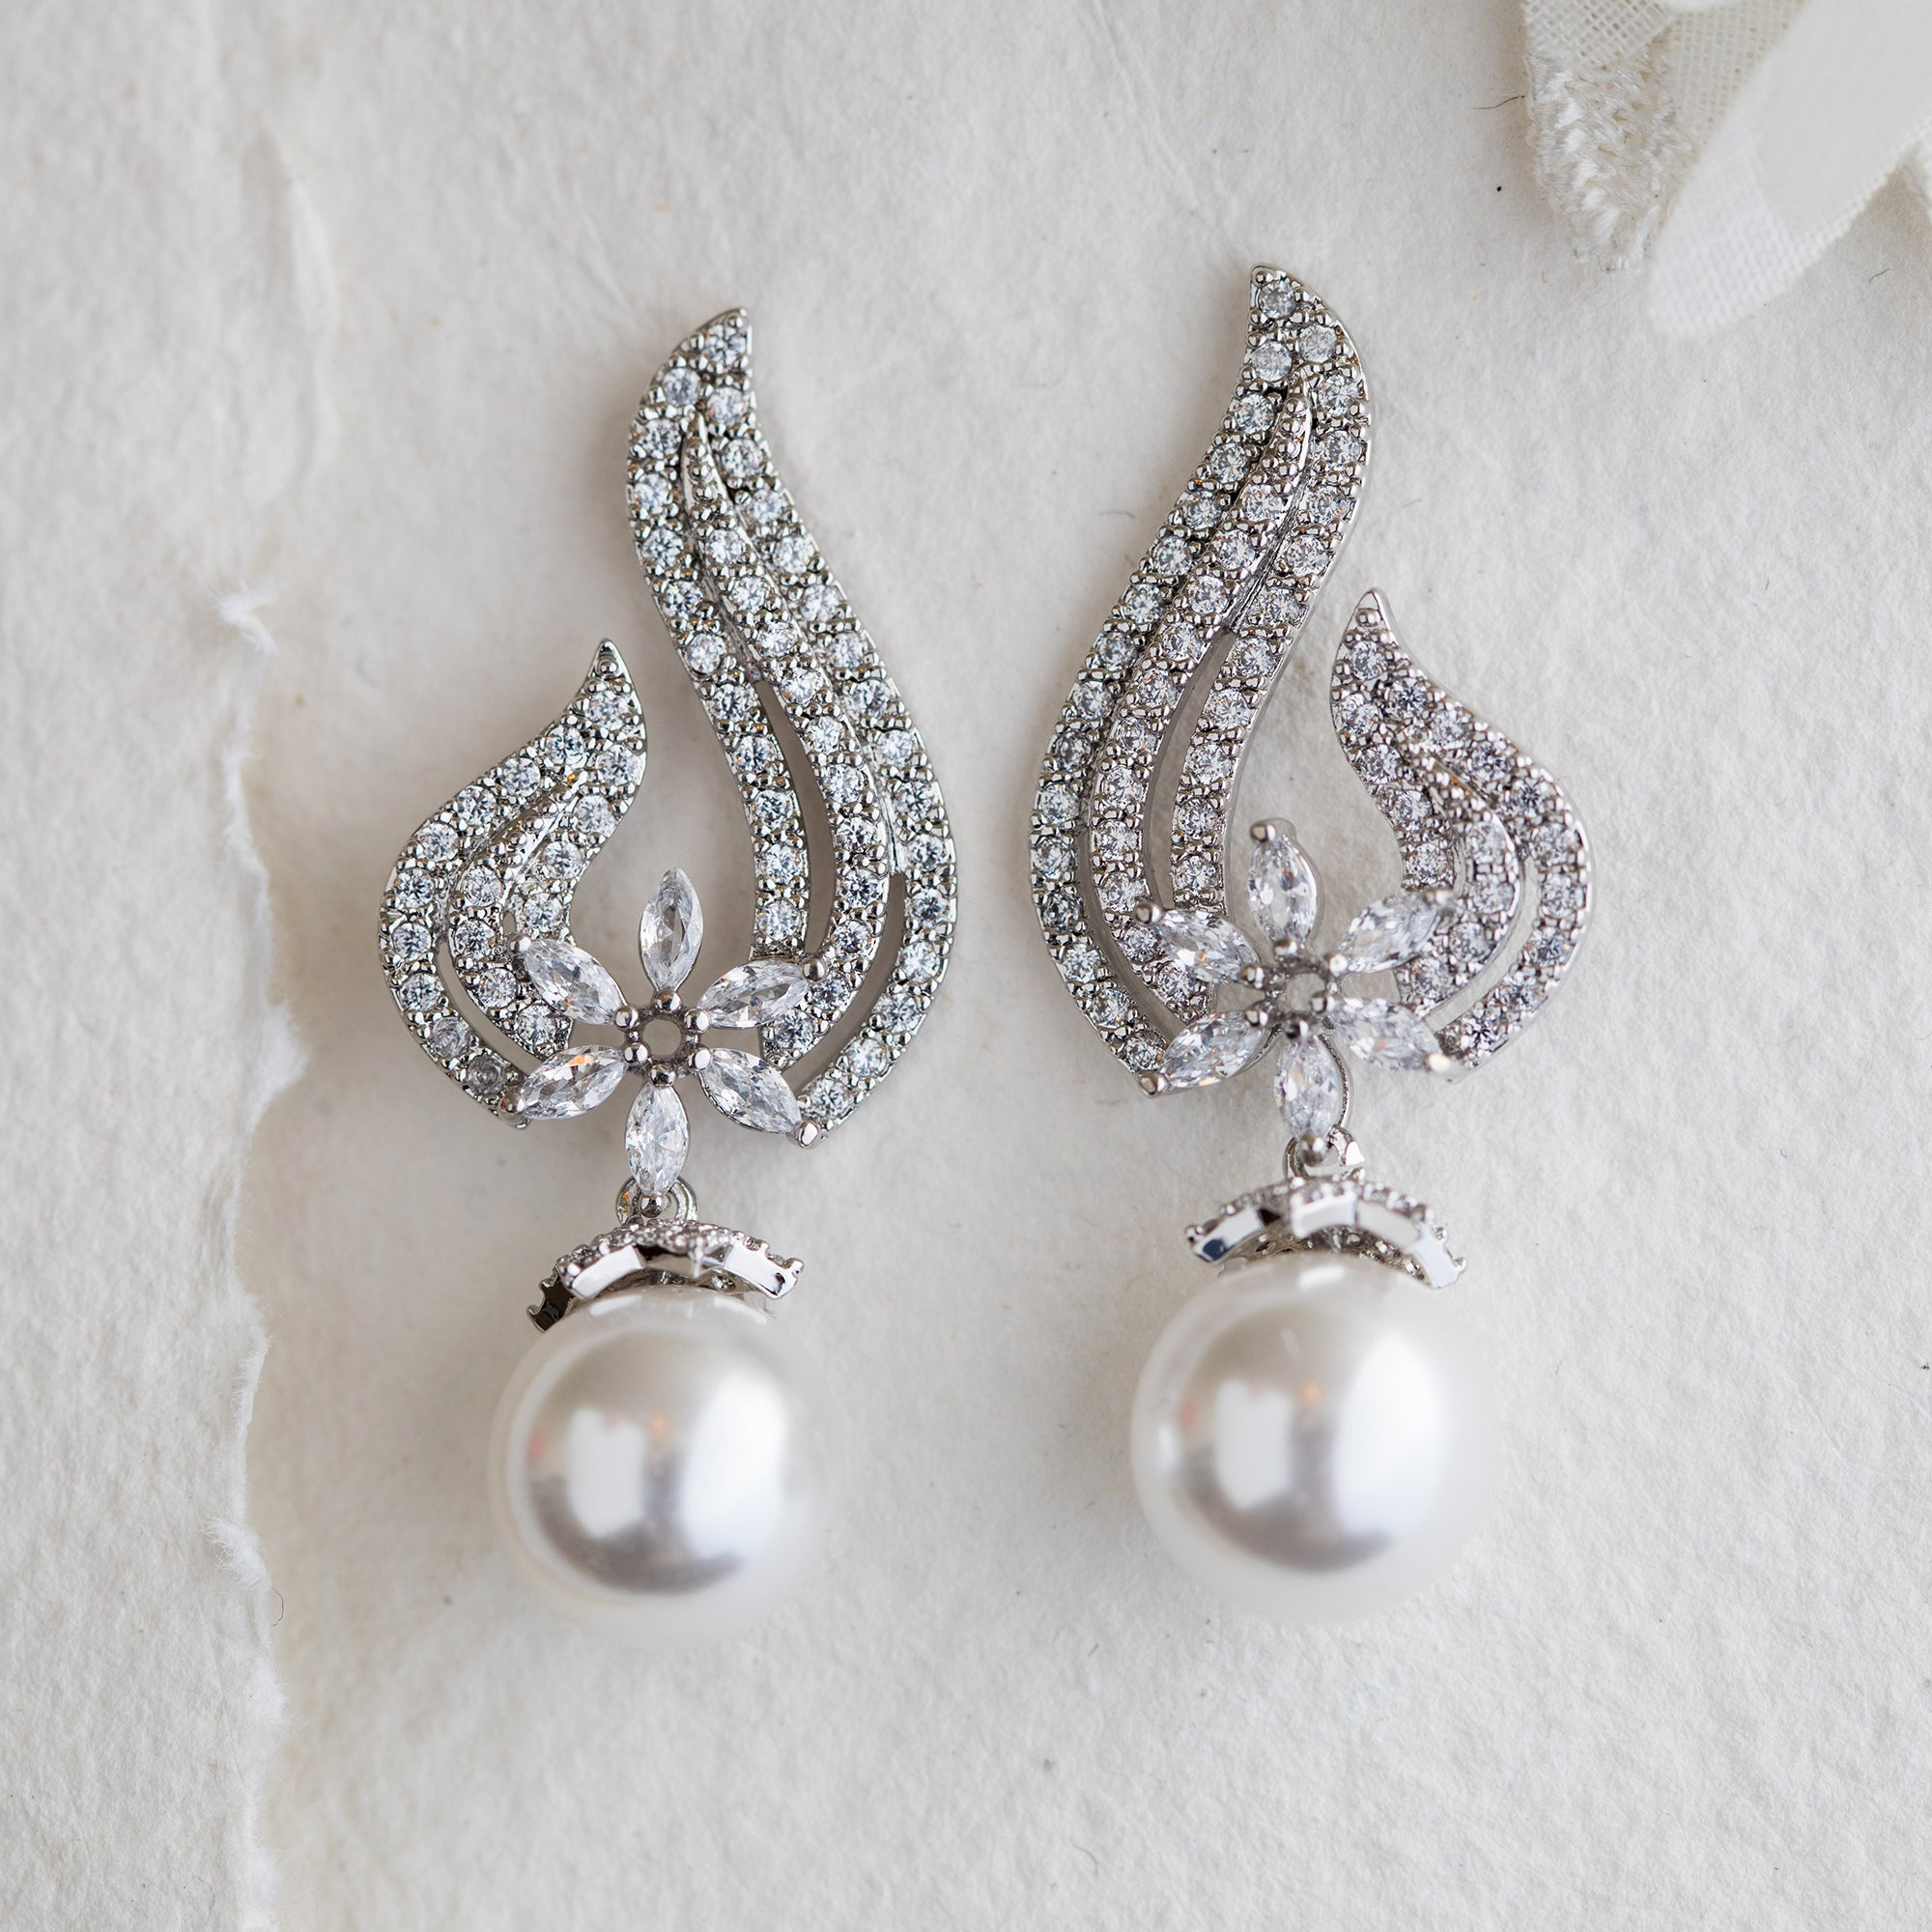 Billie pearl and crystal earrings